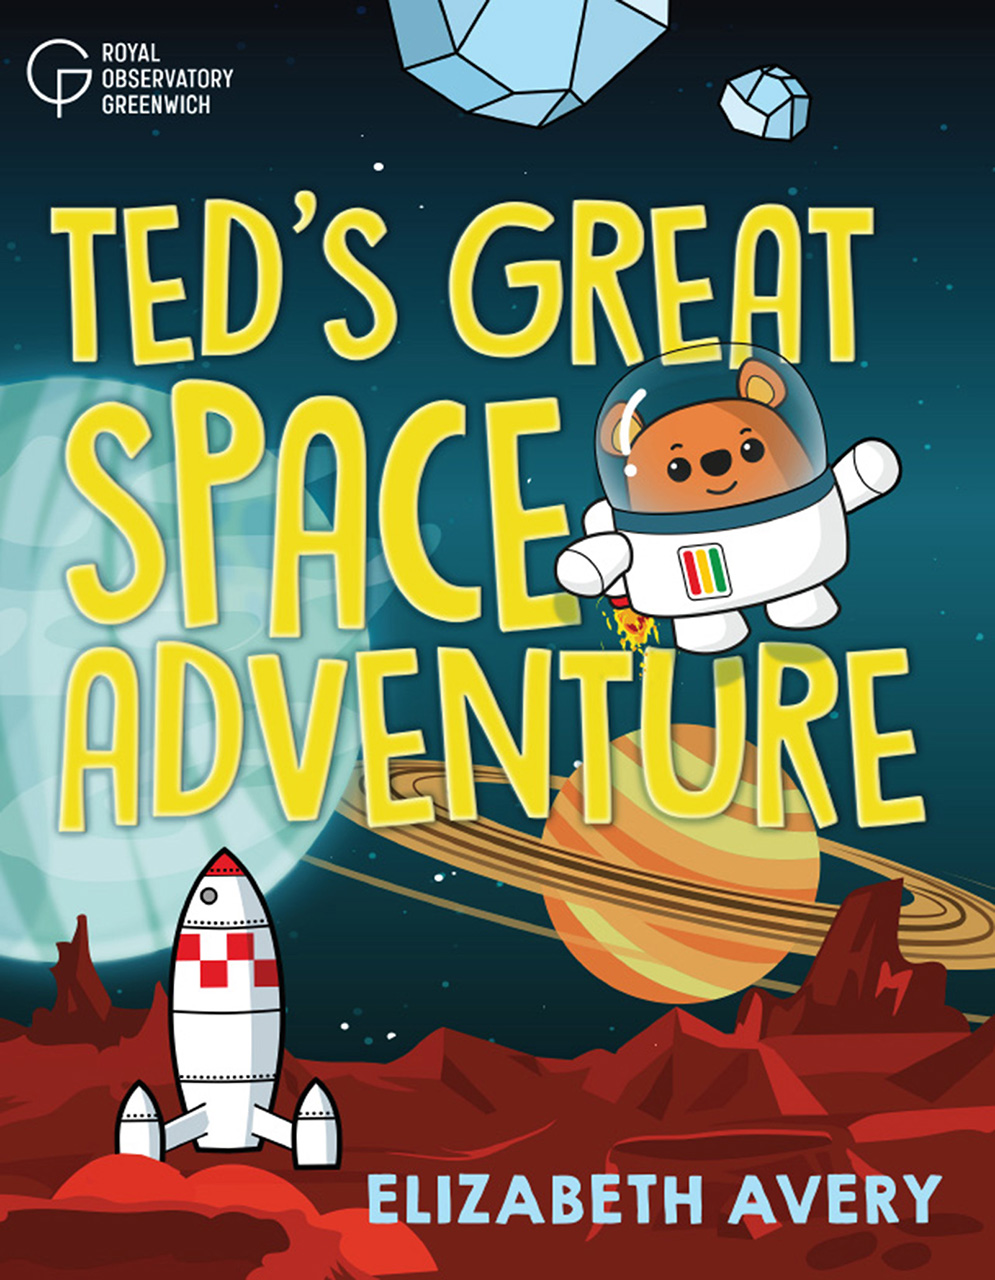 Ted's Great Space Adventure